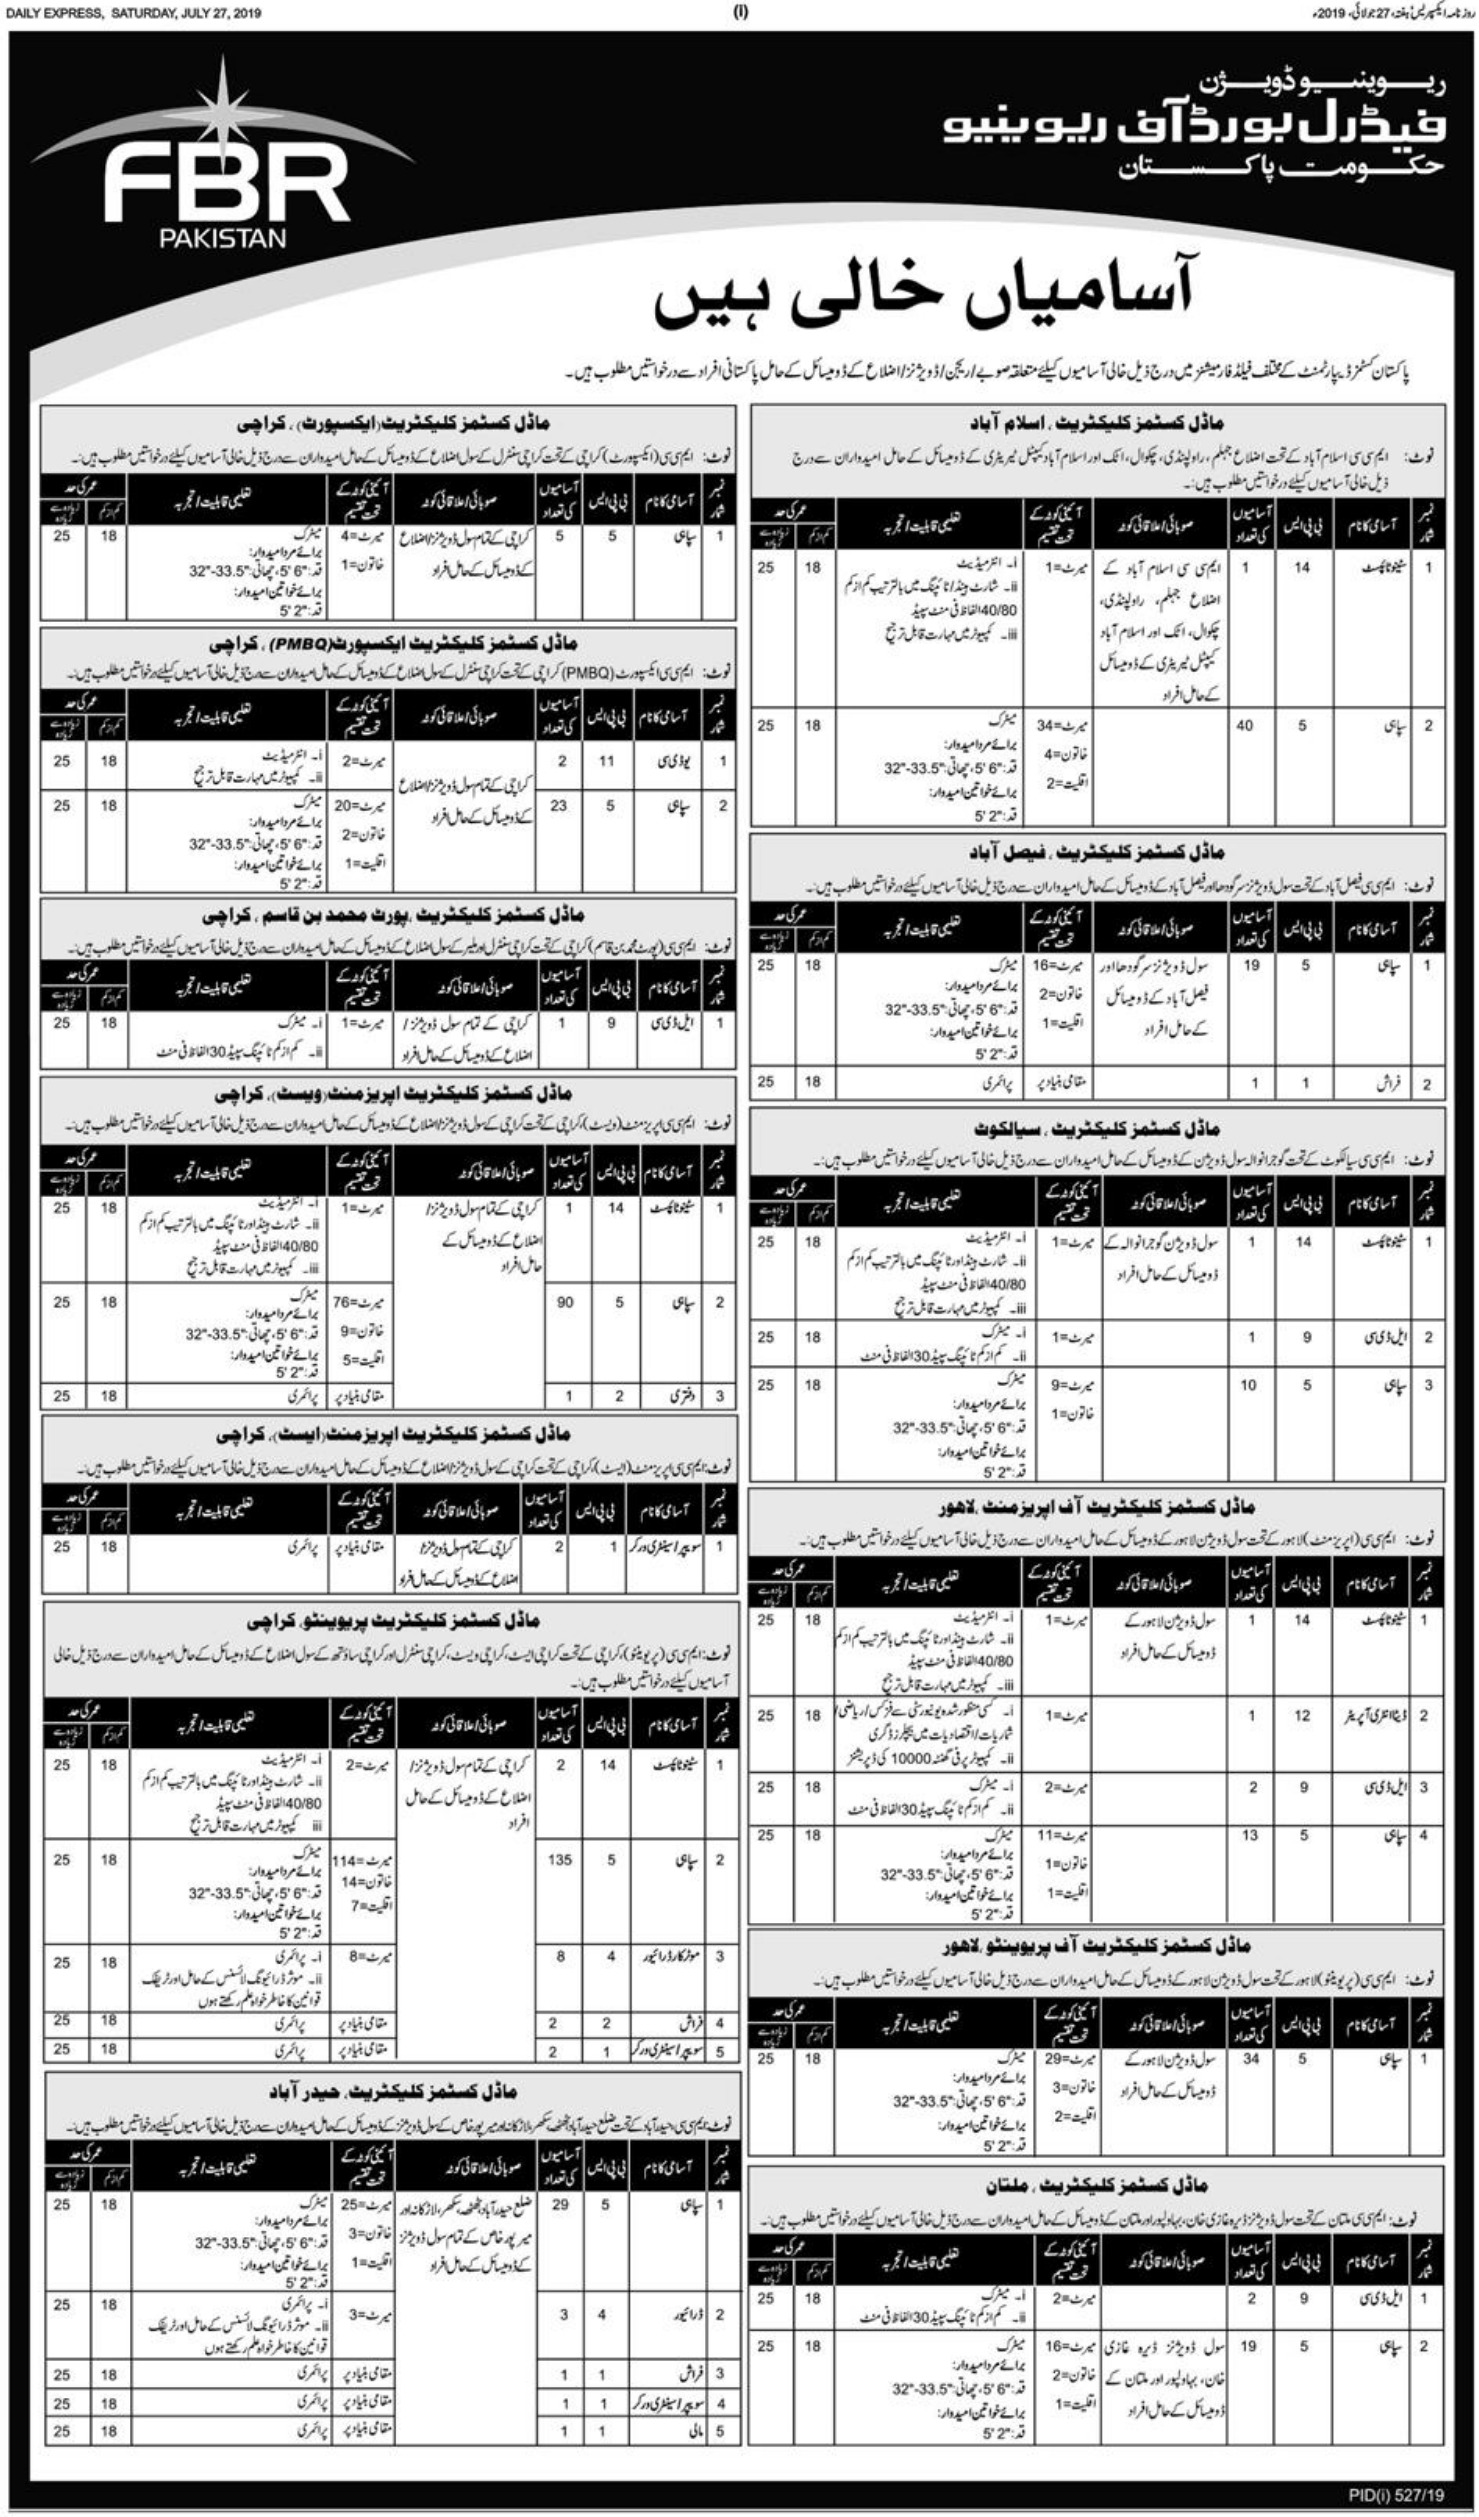 Federal Board of Revenue FBR Jobs 2019 Download OTS Application Form